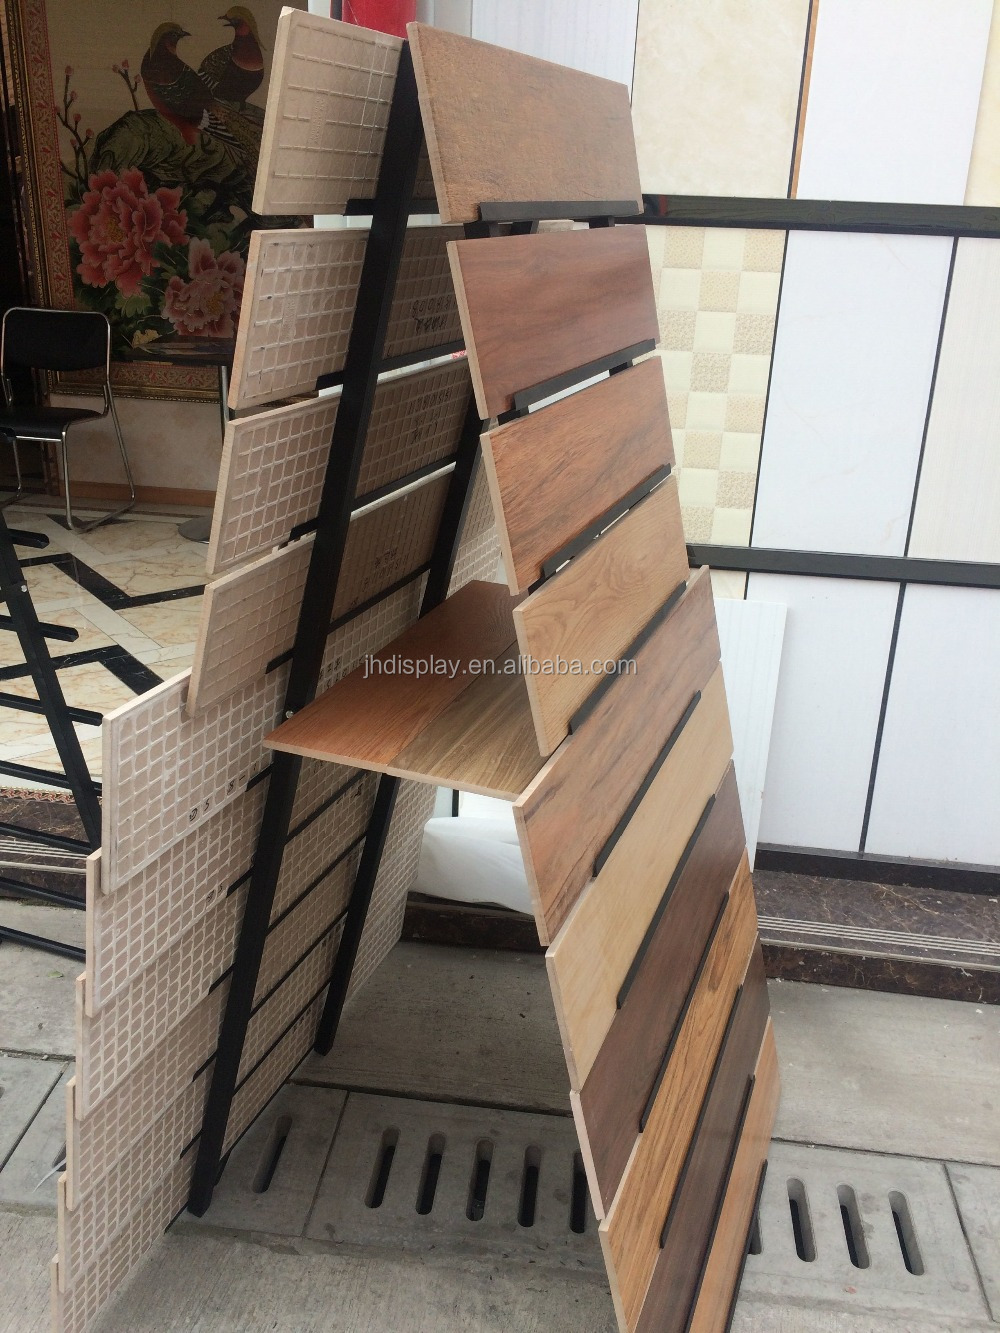 Tile store or showroom promotion progressive film ceramic tile tile store or showroom promotion progressive film ceramic tile display stand dailygadgetfo Image collections